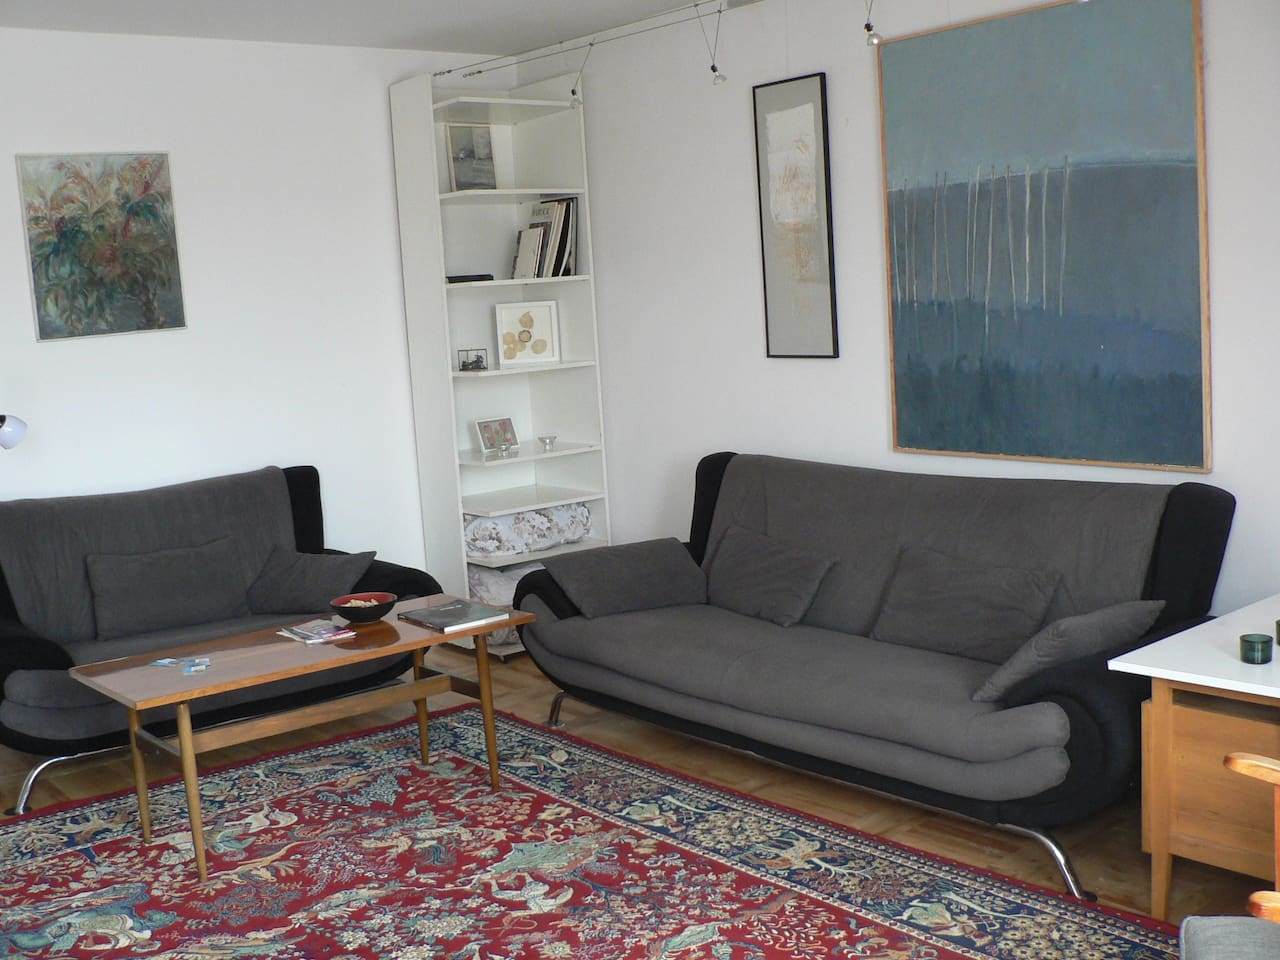 main room (27sqm), two double sofa-bed